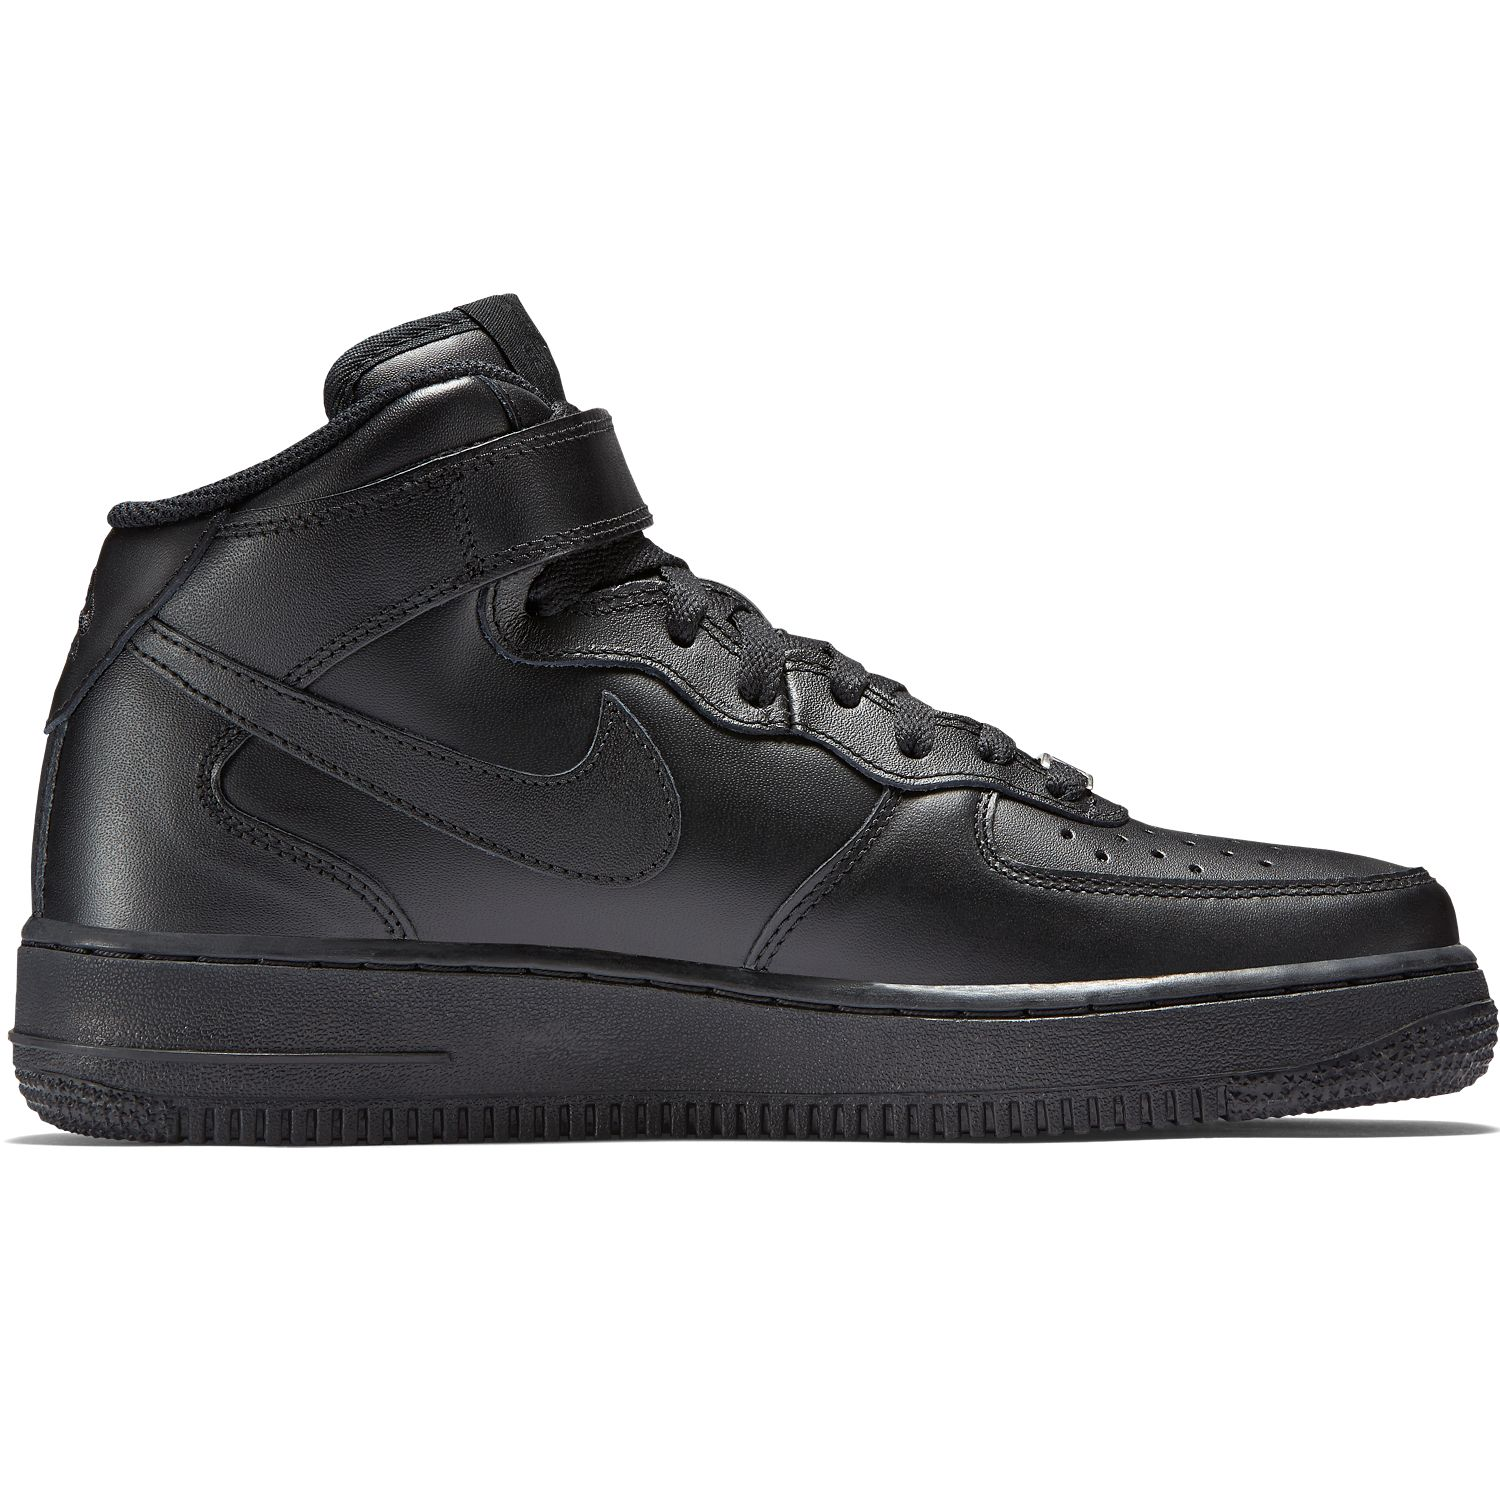 Nike Air Force 1 Mid '07 LE 366731 001